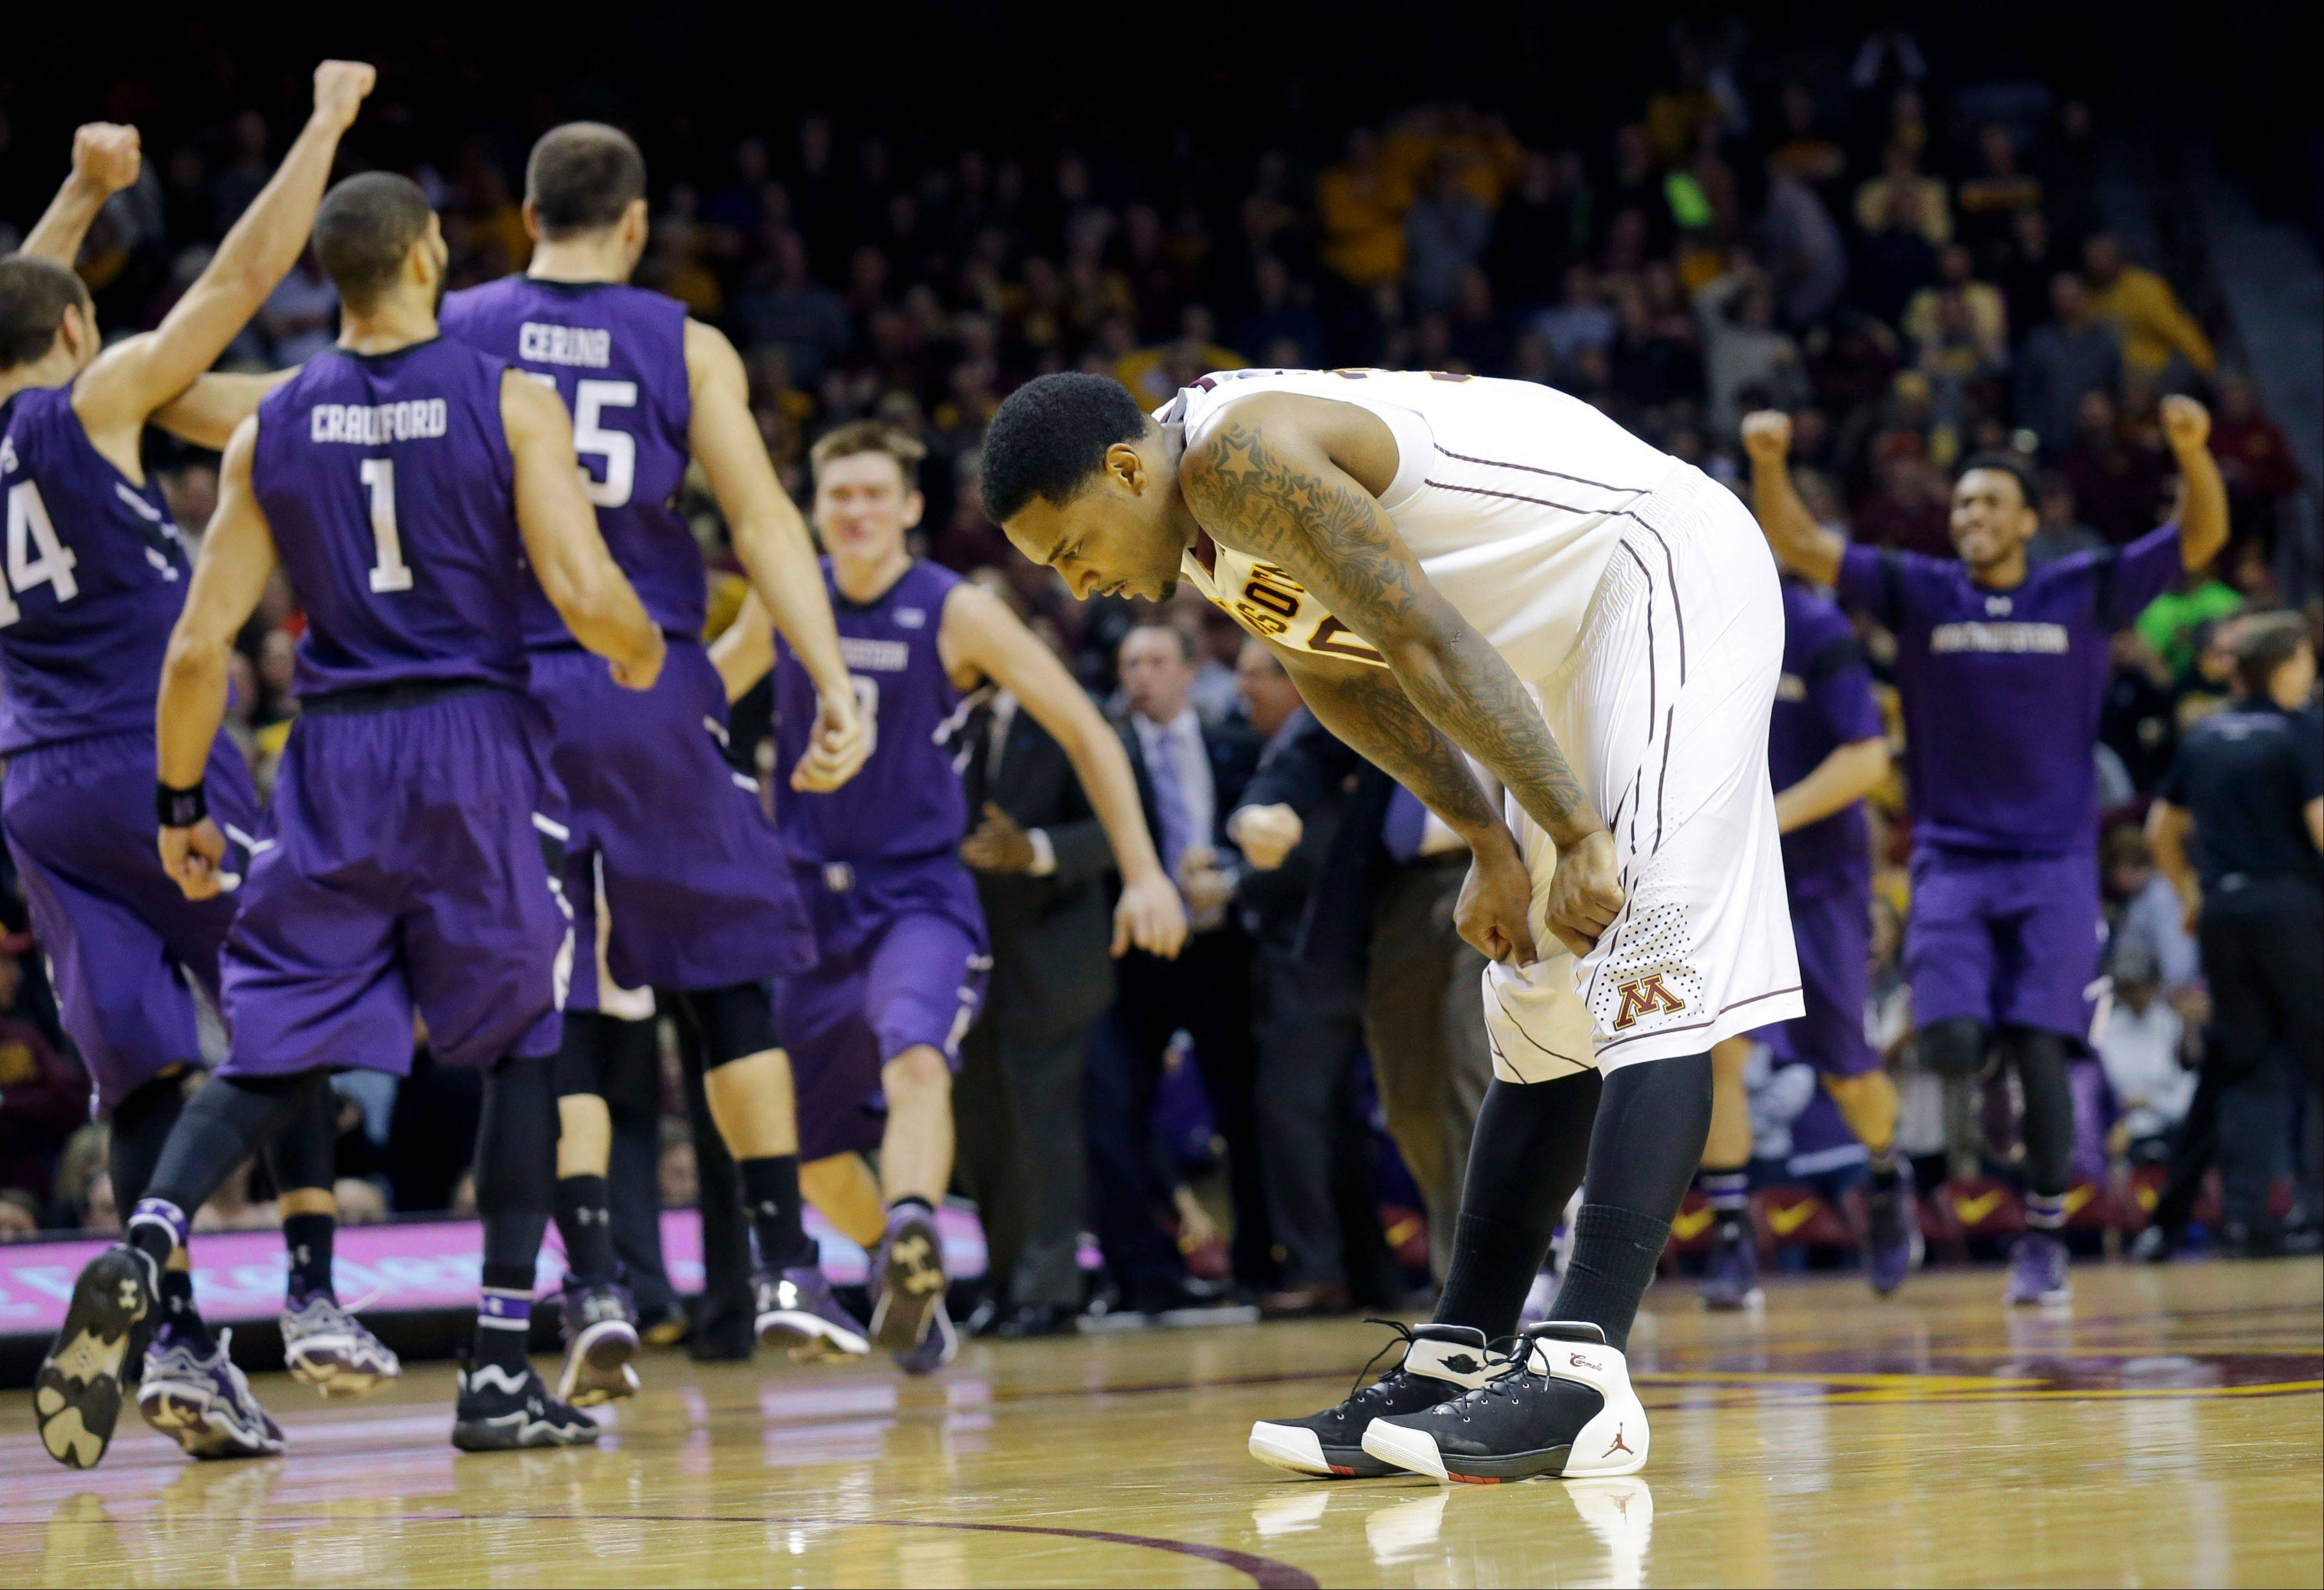 Minnesota guard Malik Smith reacts as Northwestern players celebrate after the Wildcatrs beat the Gophers 55-54 during an NCAA college basketball game in Minneapolis, Saturday, Feb. 1, 2014.